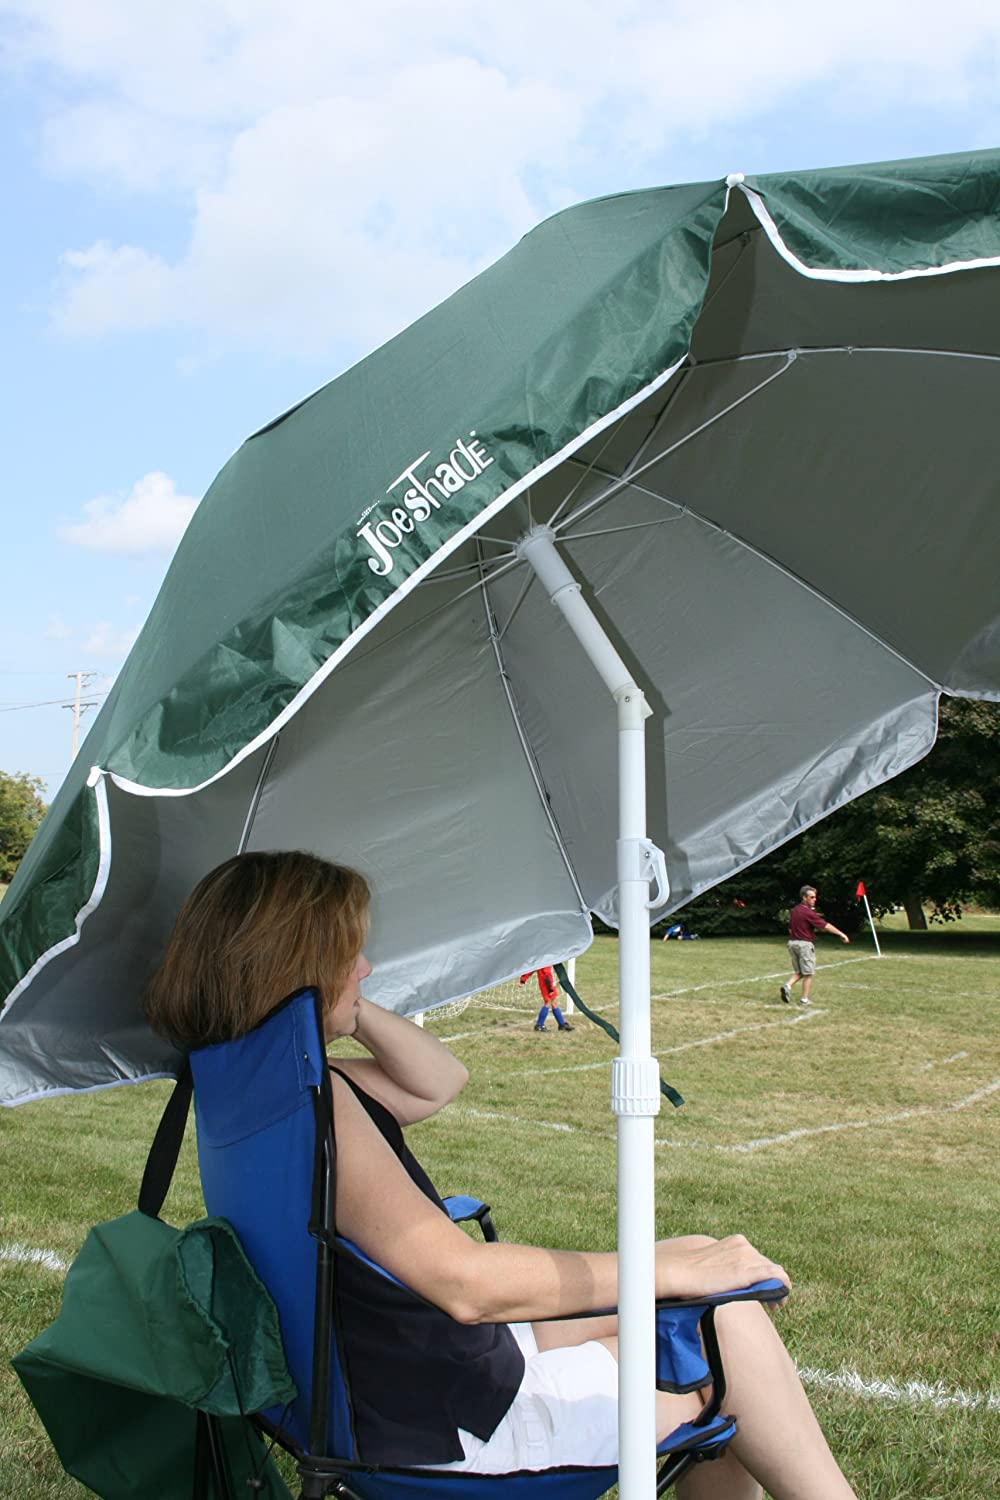 Superbe Amazon.com: JoeShade, Portable Sun Shade Umbrella, Sunshade Umbrella,  Sports Umbrella, BLUE: Garden U0026 Outdoor